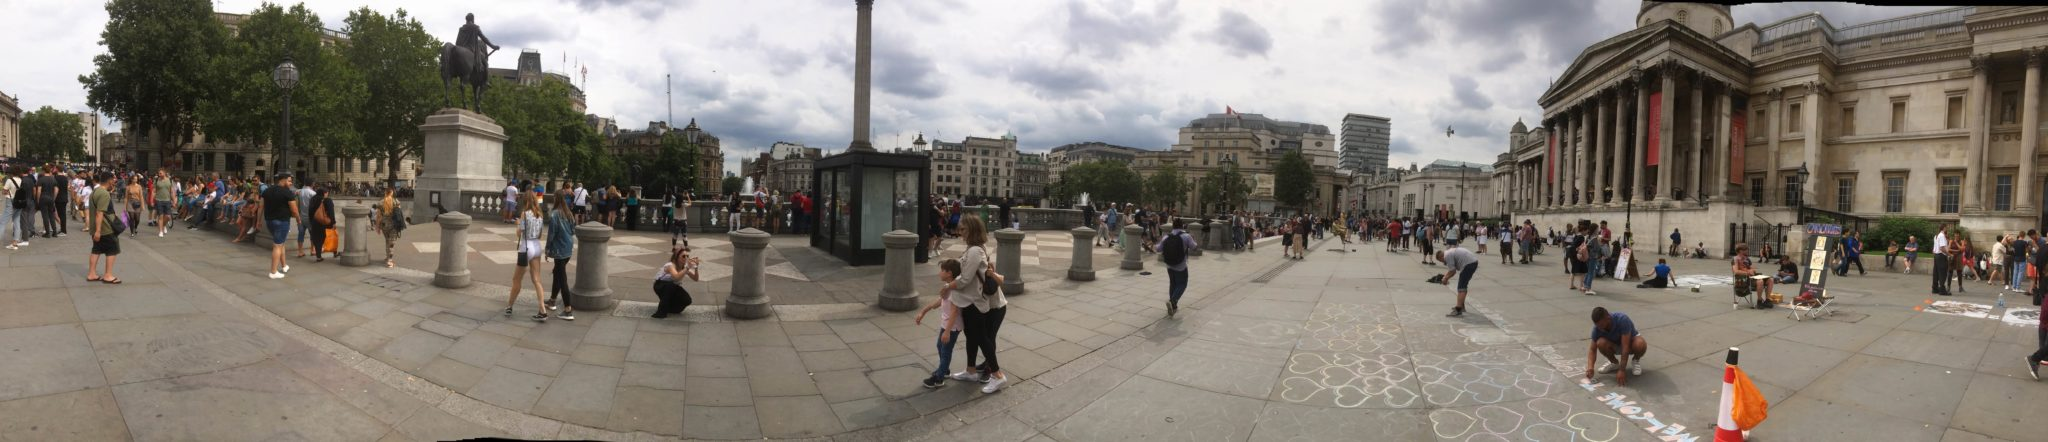 What an amazing part of London: Trafalgar Square